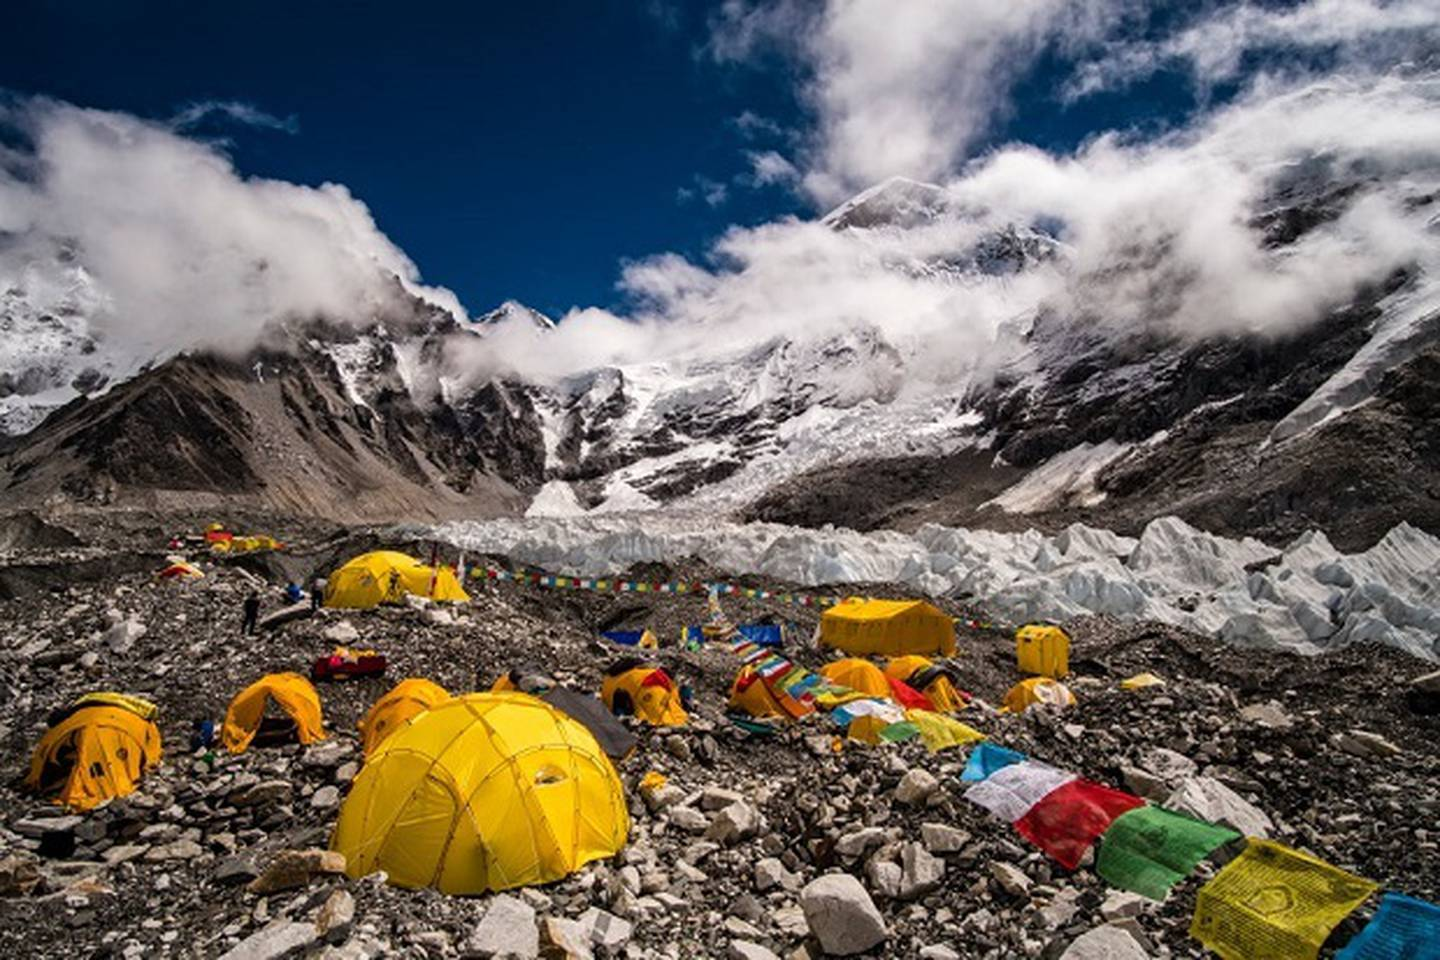 Tents set up at Everest Base Camp on Khumbu glacier, Mt Everest behind covered by monsoon clouds. Photo / Getty Images